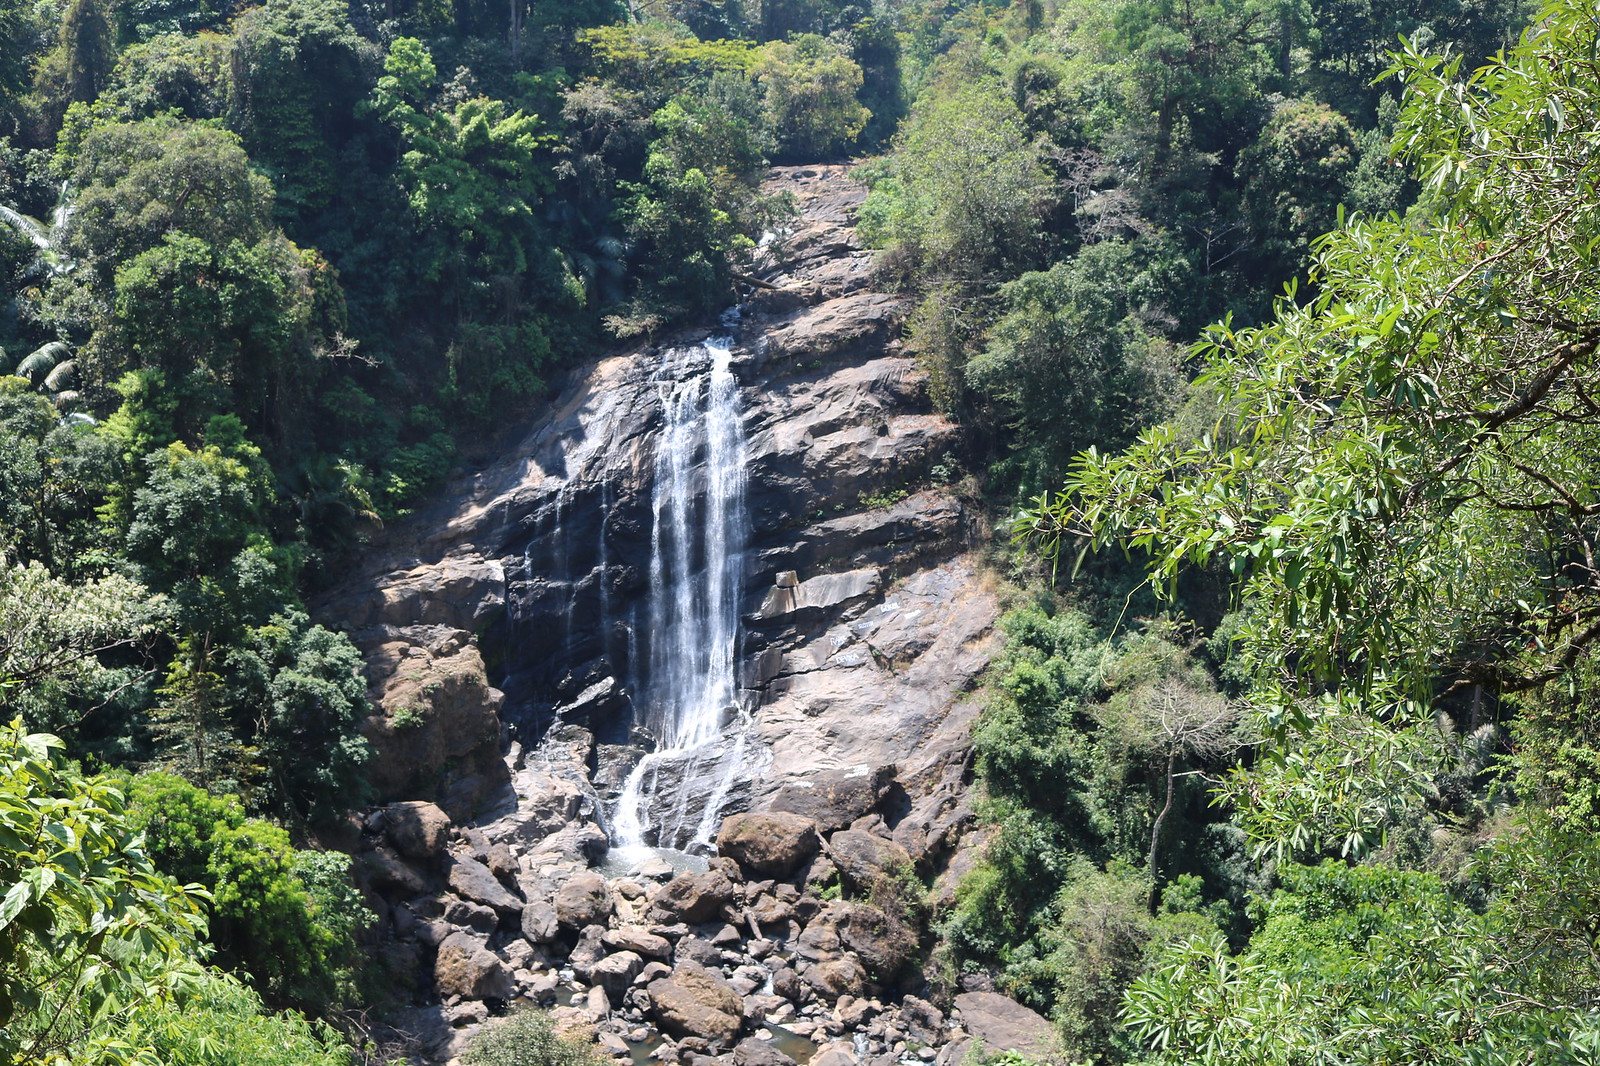 Valara Waterfalls